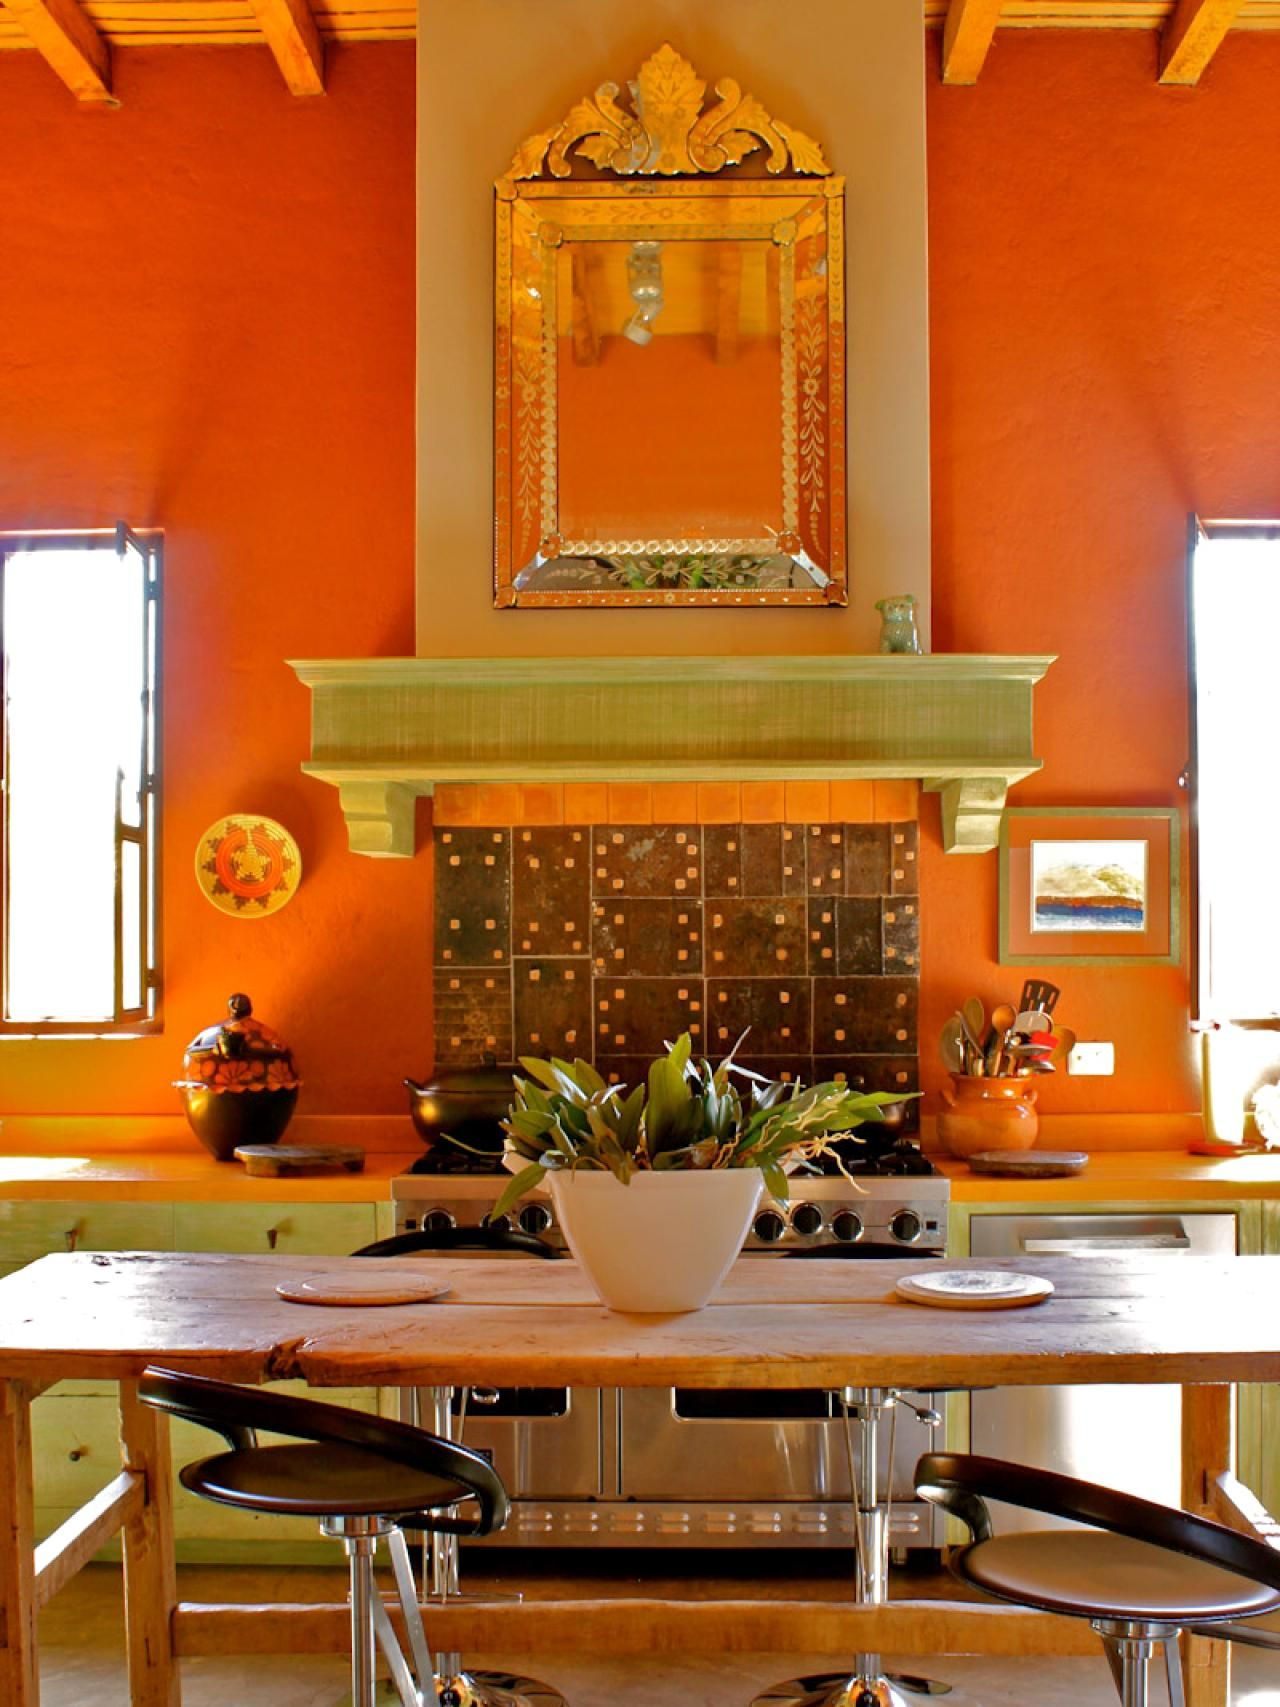 Spanish Style Decorating Ideas Interior Design Styles And Color Schemes For Home Hgtv